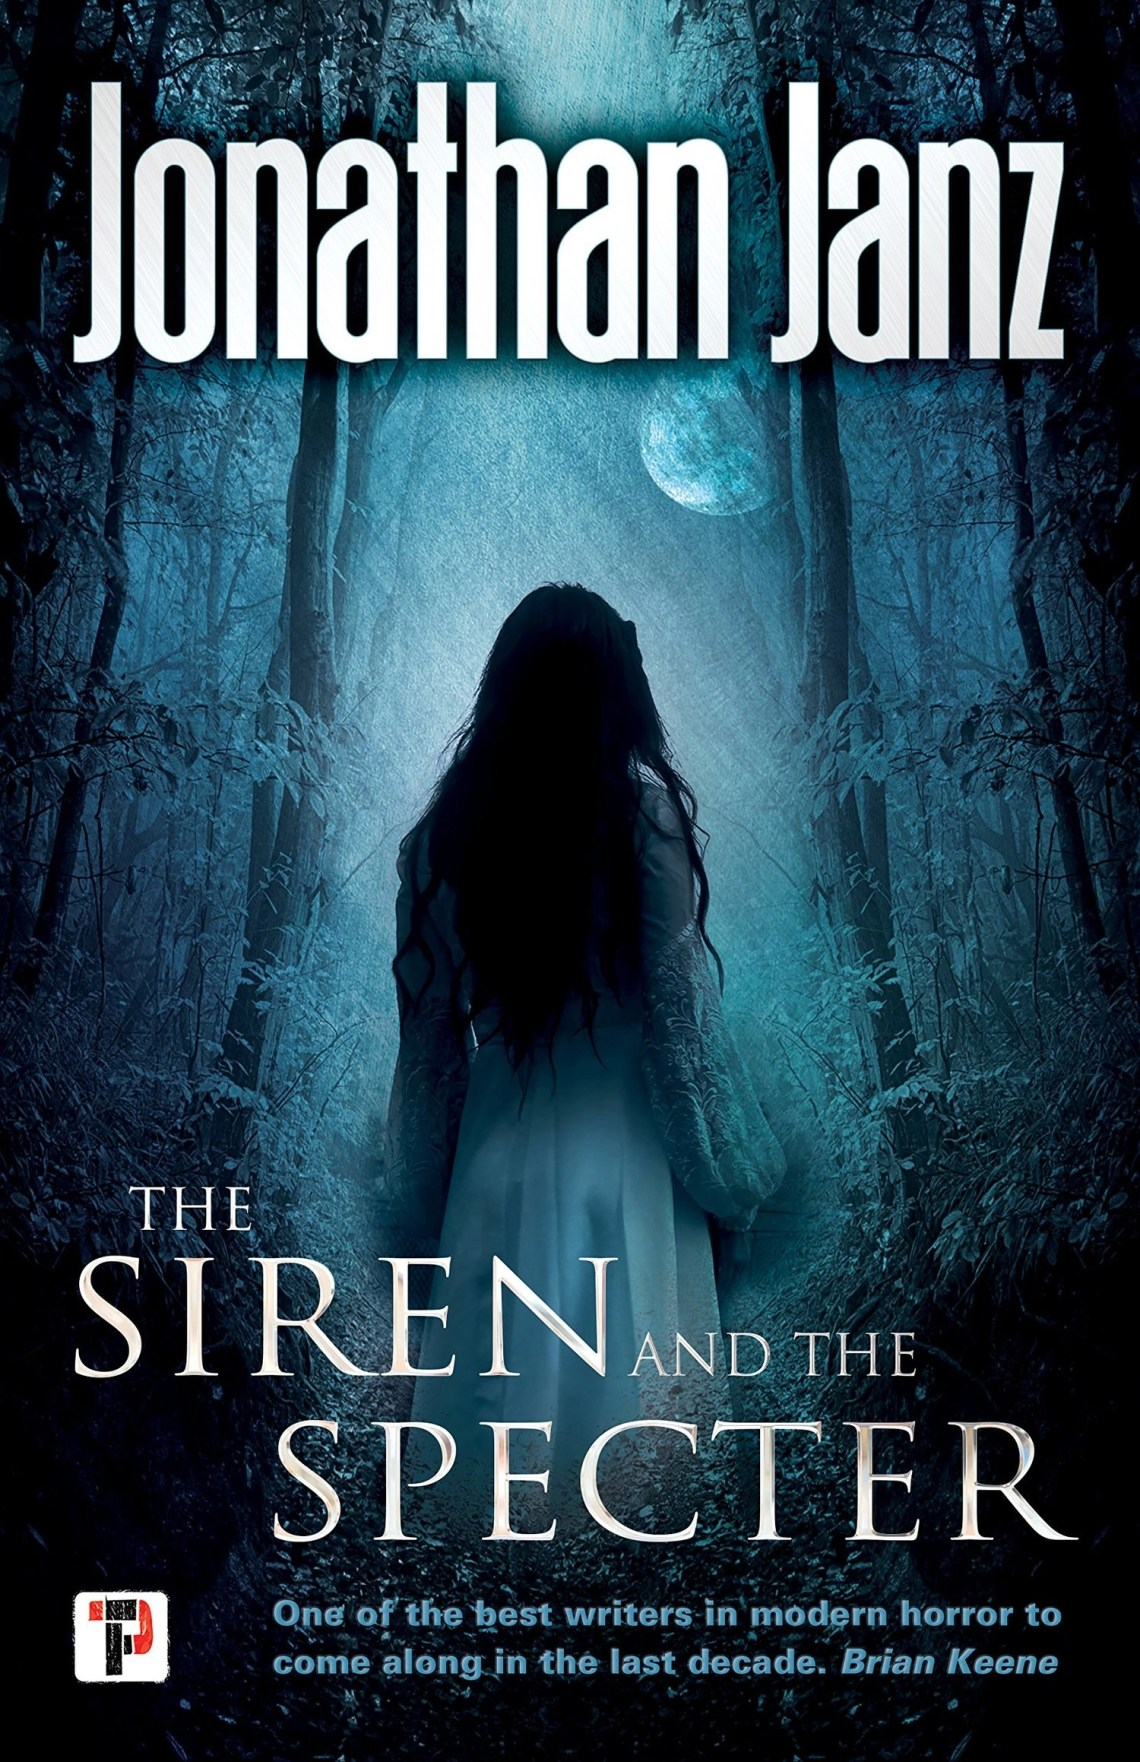 The Siren and the Specter by Johnathan Janz